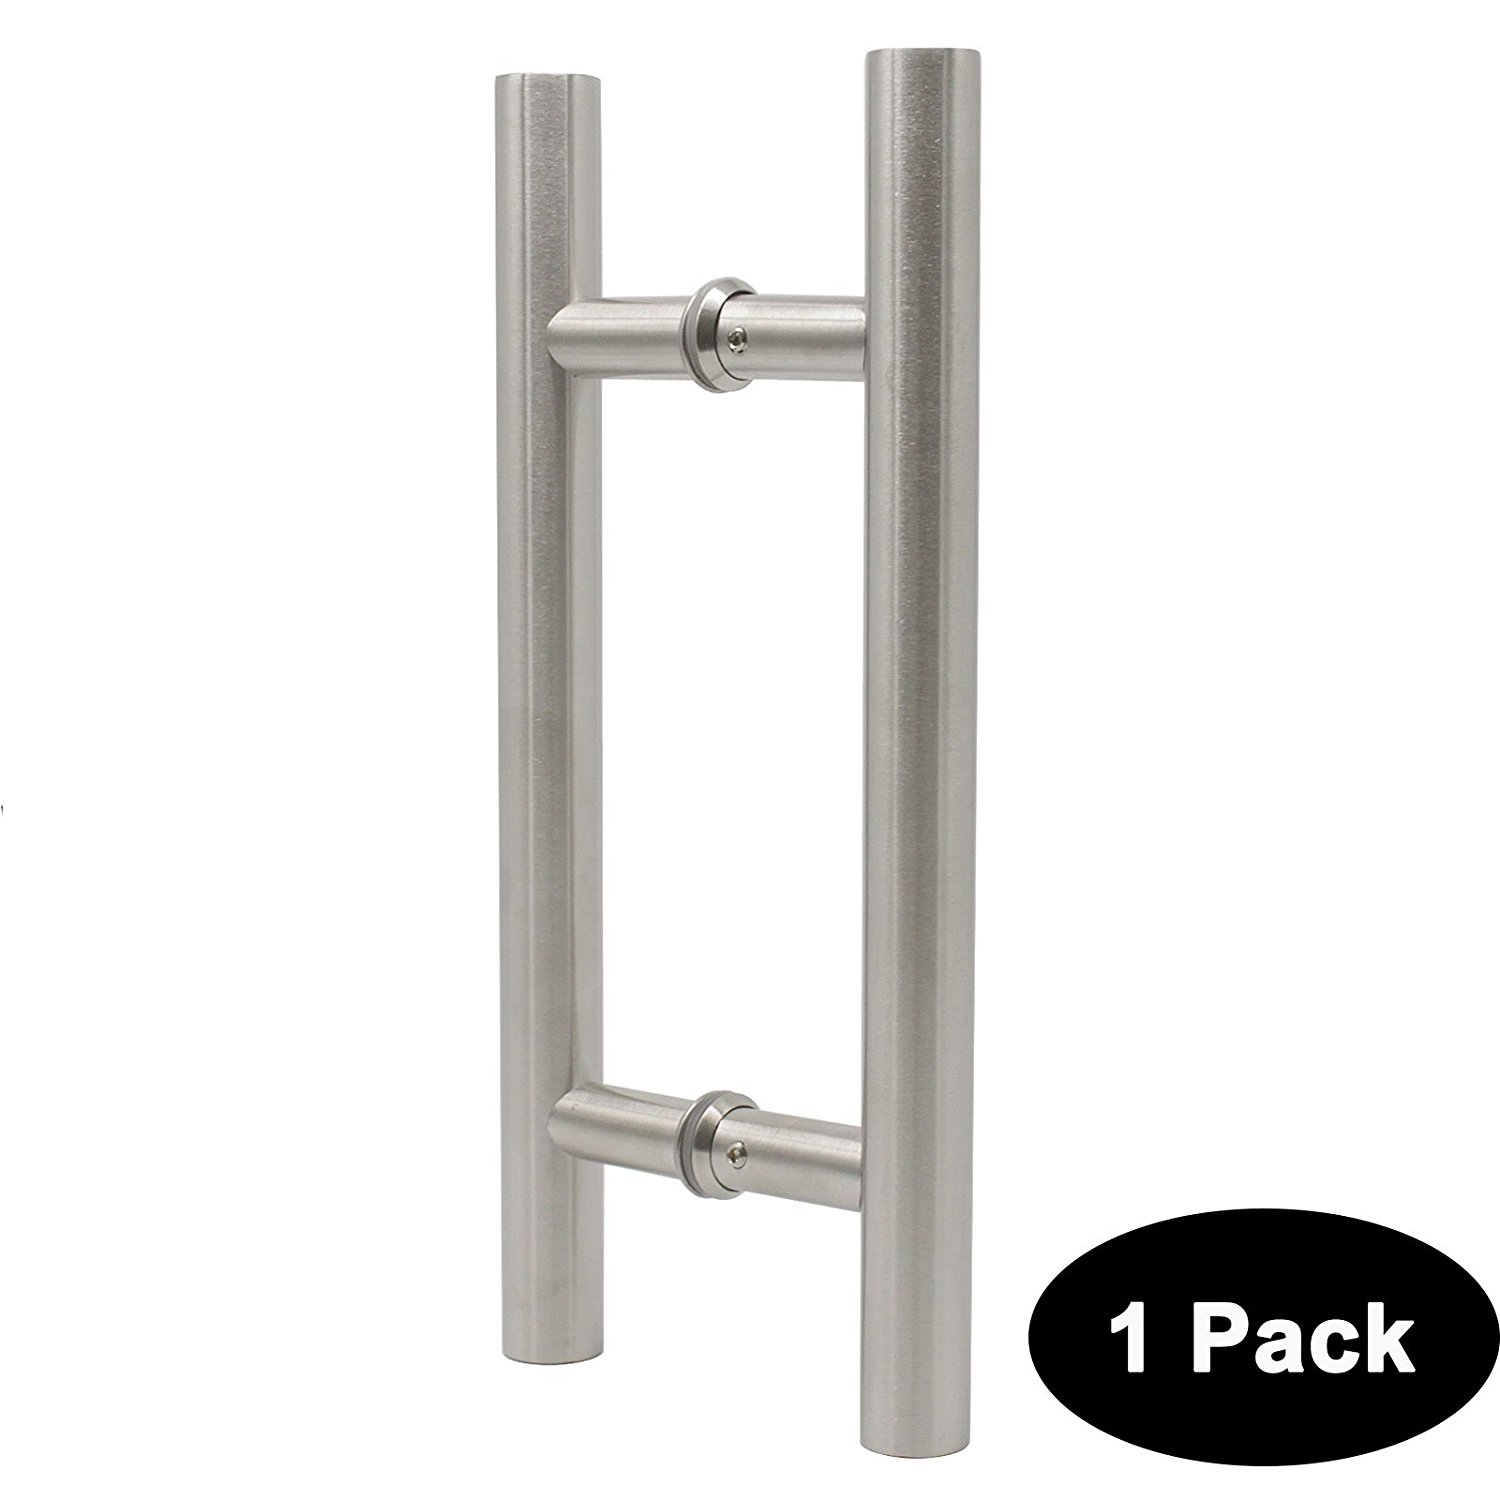 "Probrico 1 Pack Gate Door Pull 12"" 305mm Barn Glass Wood Door Handle T Bar Two Sides Large 304 Stainless Steel Heavy Duty Door Pulls Brushed Nickel"